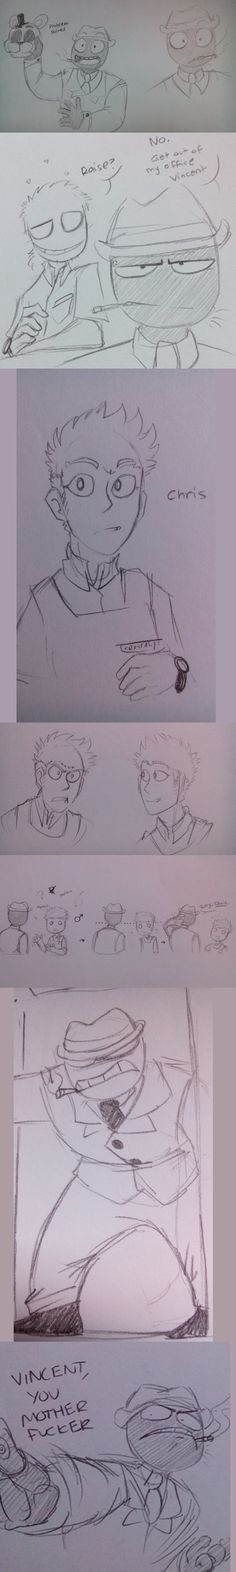 Doodles mcDoodleton....Love how he is so angry with Vincent...XD